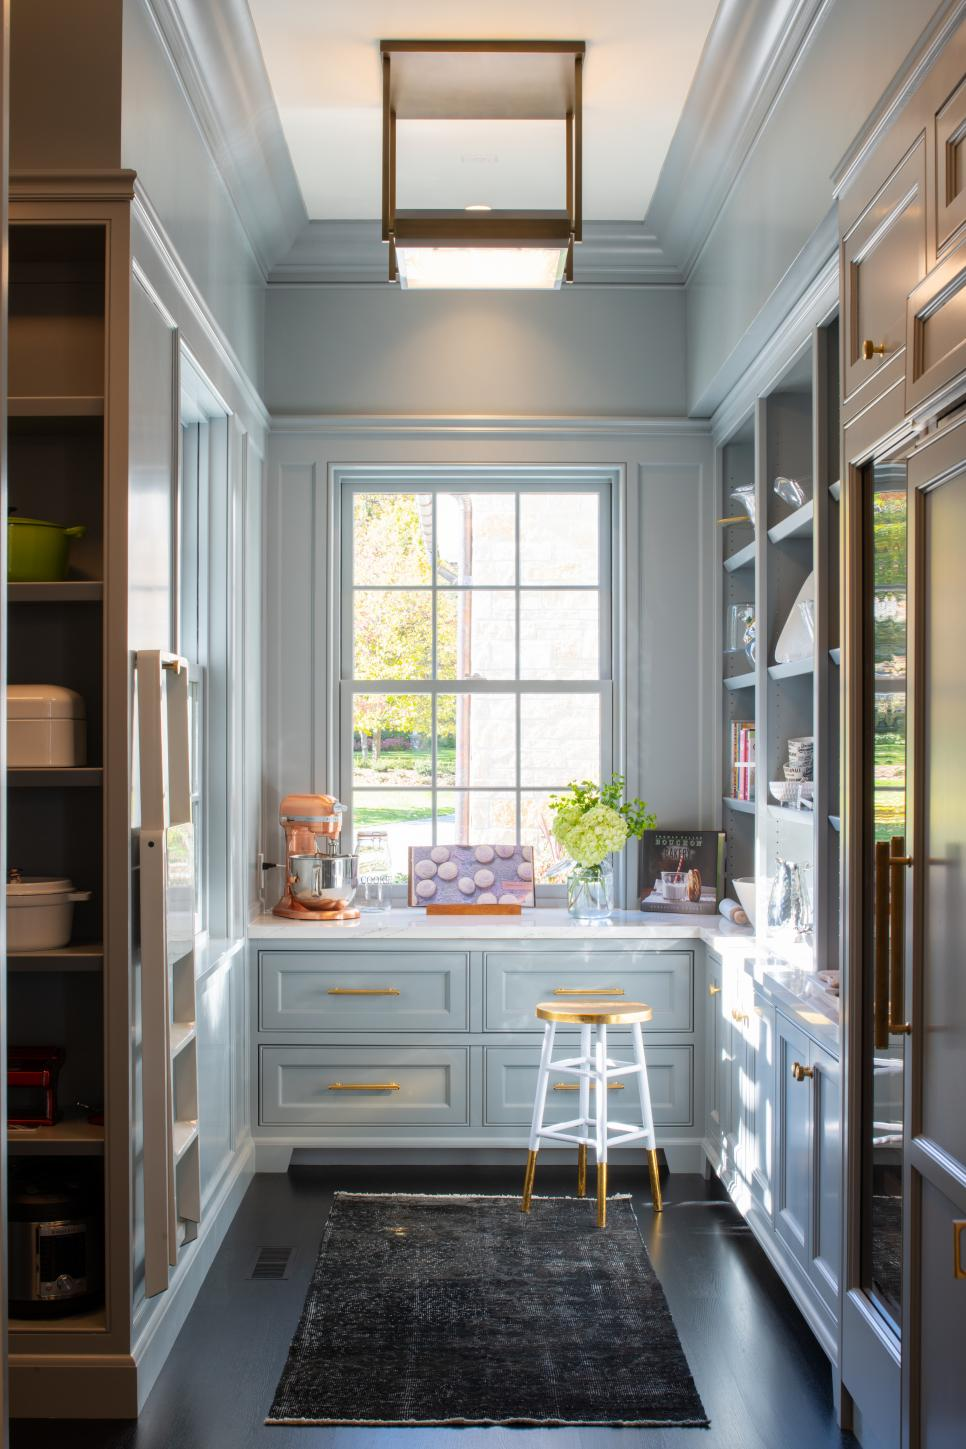 Butler's Pantry With Gray Cabinets, White Counter and Built-in Shelves